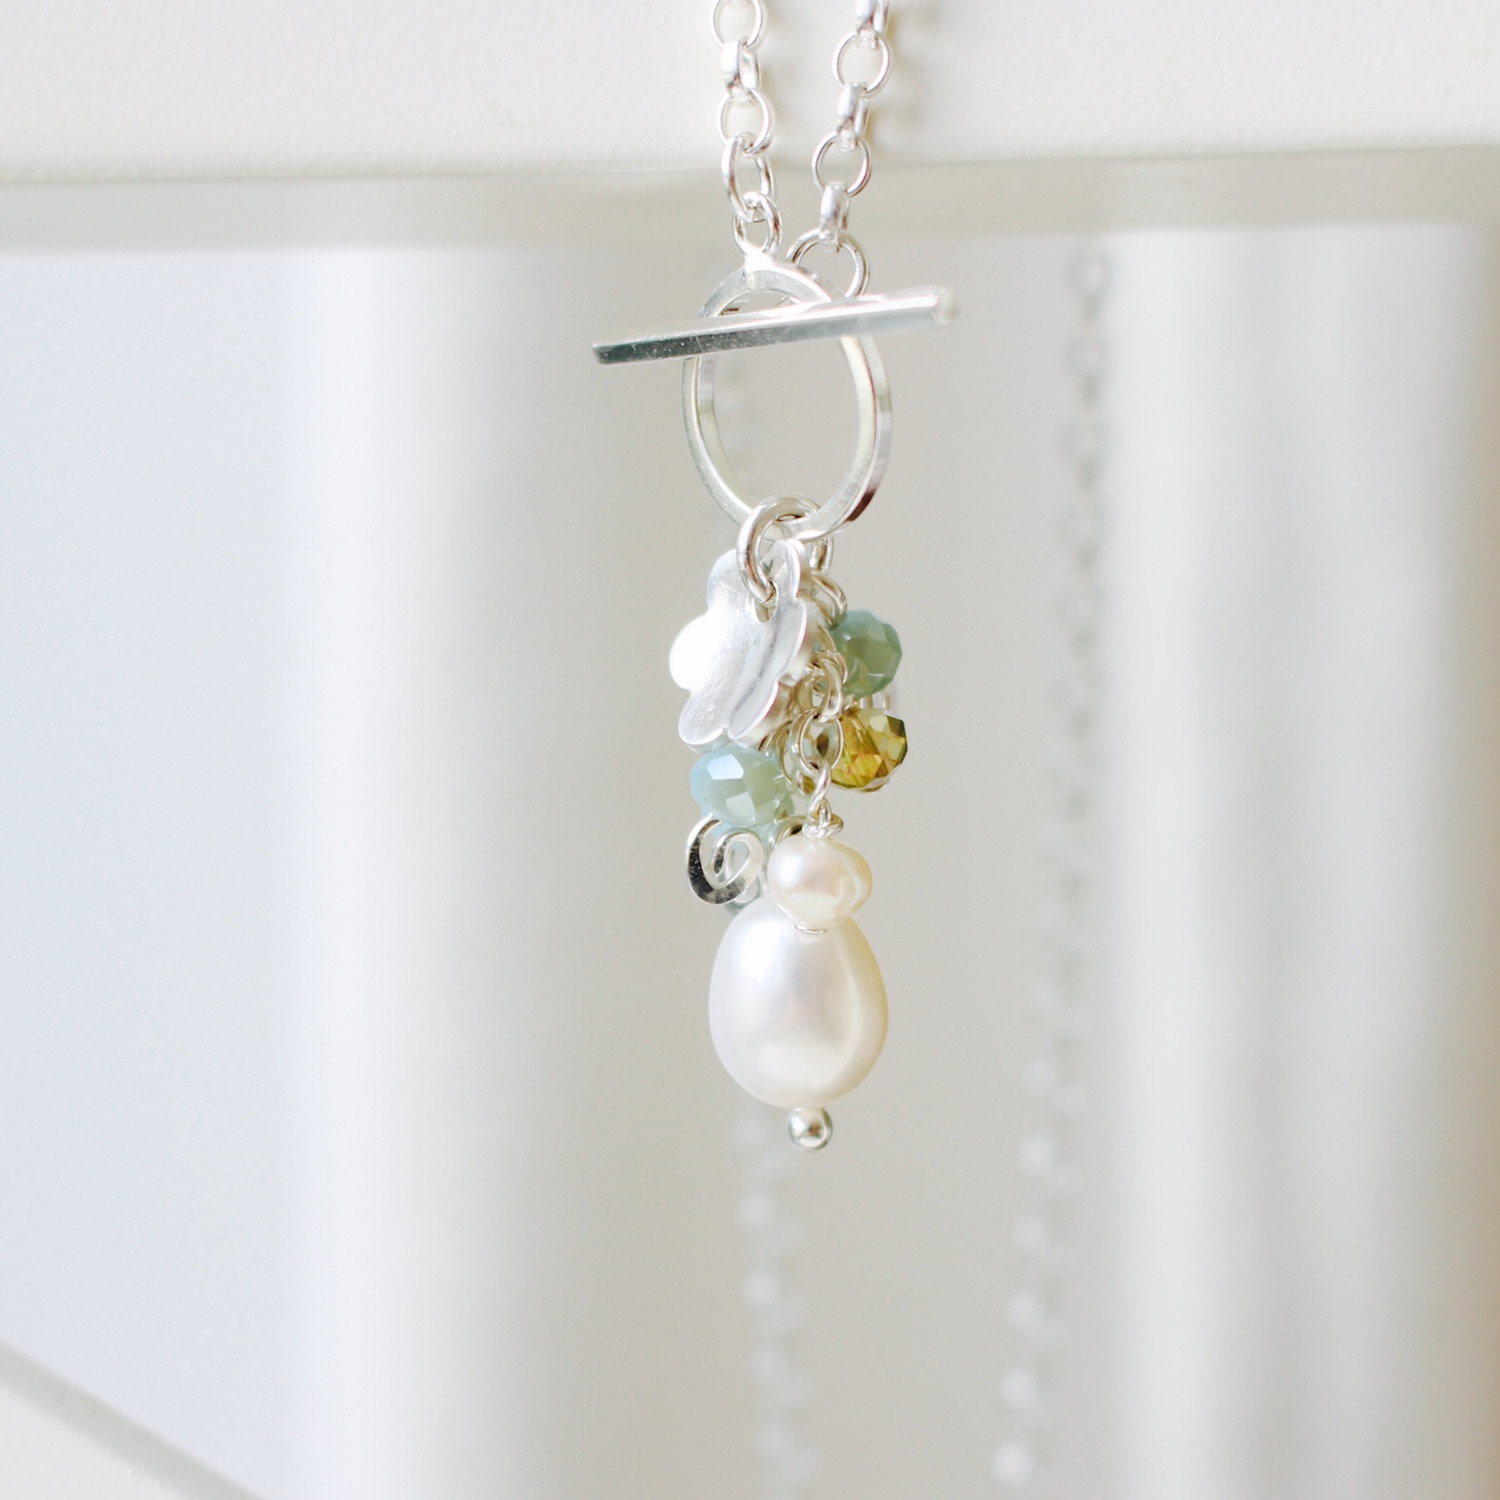 Soft duck eggy blue glass and pearls necklace. Sterling silver. By Nina Parker.